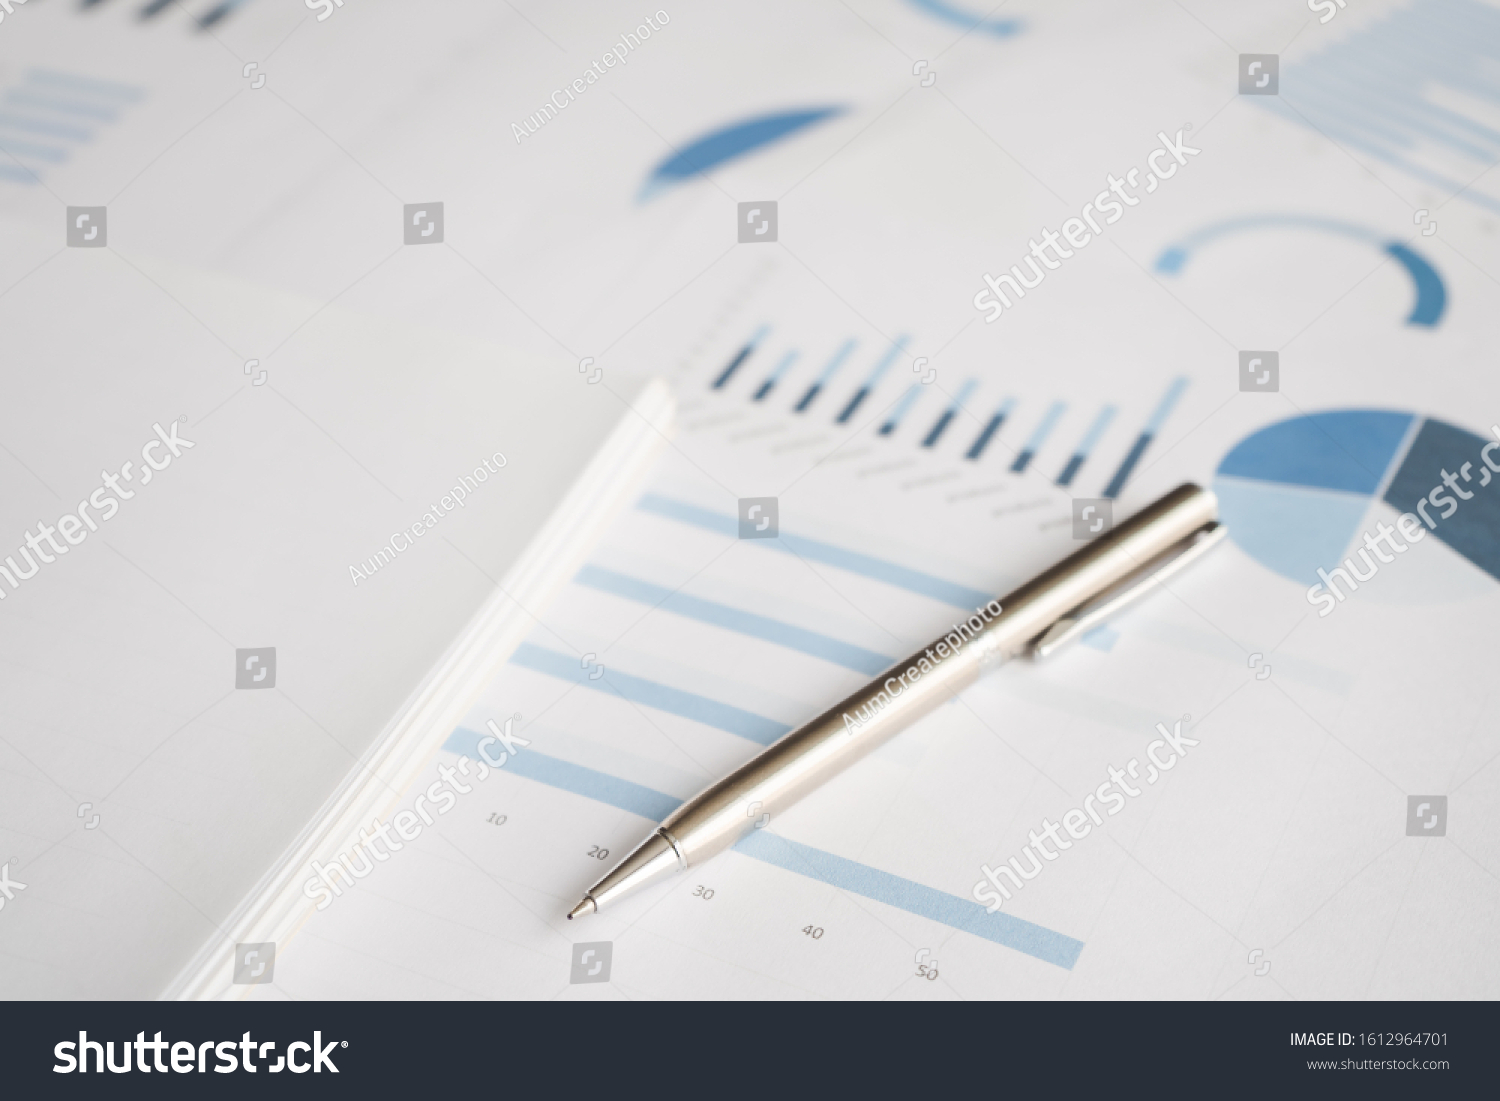 Business document report data with bar charts, pie charts, line graphs, on paper. Research data for market analysis and corporate financial planning. #1612964701